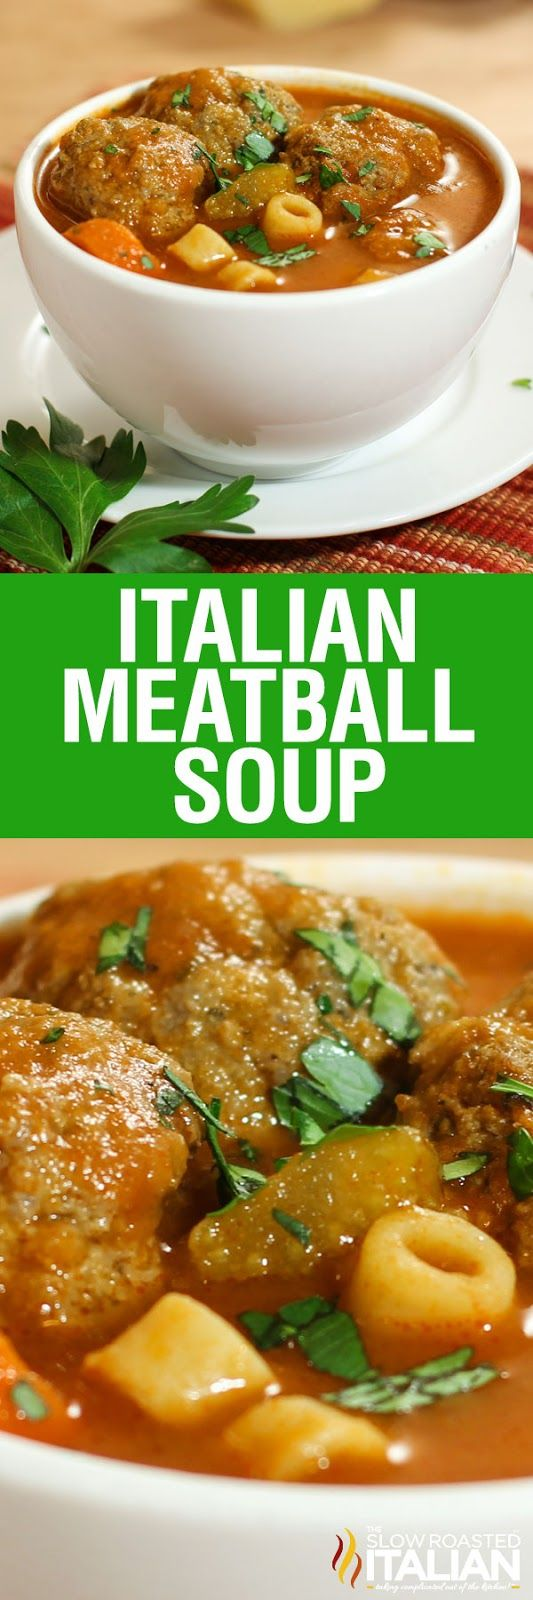 Italian Meatball Soup is hearty feel-good soup loaded with pasta, veggies and scrumptious meatballs cooked in a  tomato broth. This is a simple recipe prepared in one pot that is ready in just 30 minutes.  It doesn't get much easier than that!